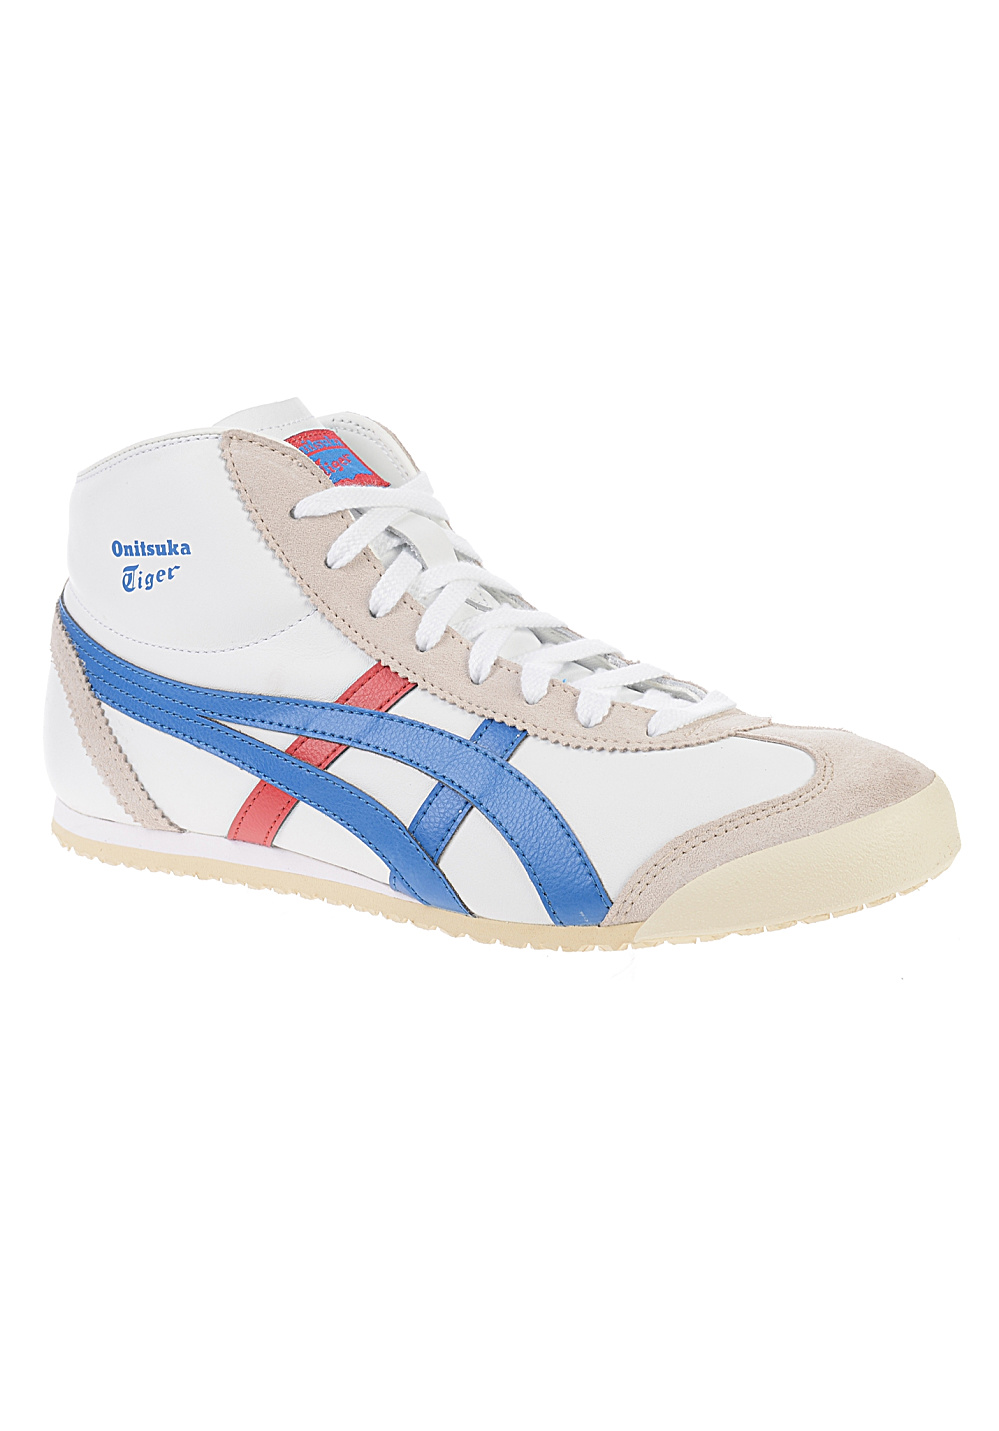 best sneakers 8f0b4 89995 Onitsuka Tiger Mexico Mid Runner - Sneakers - White